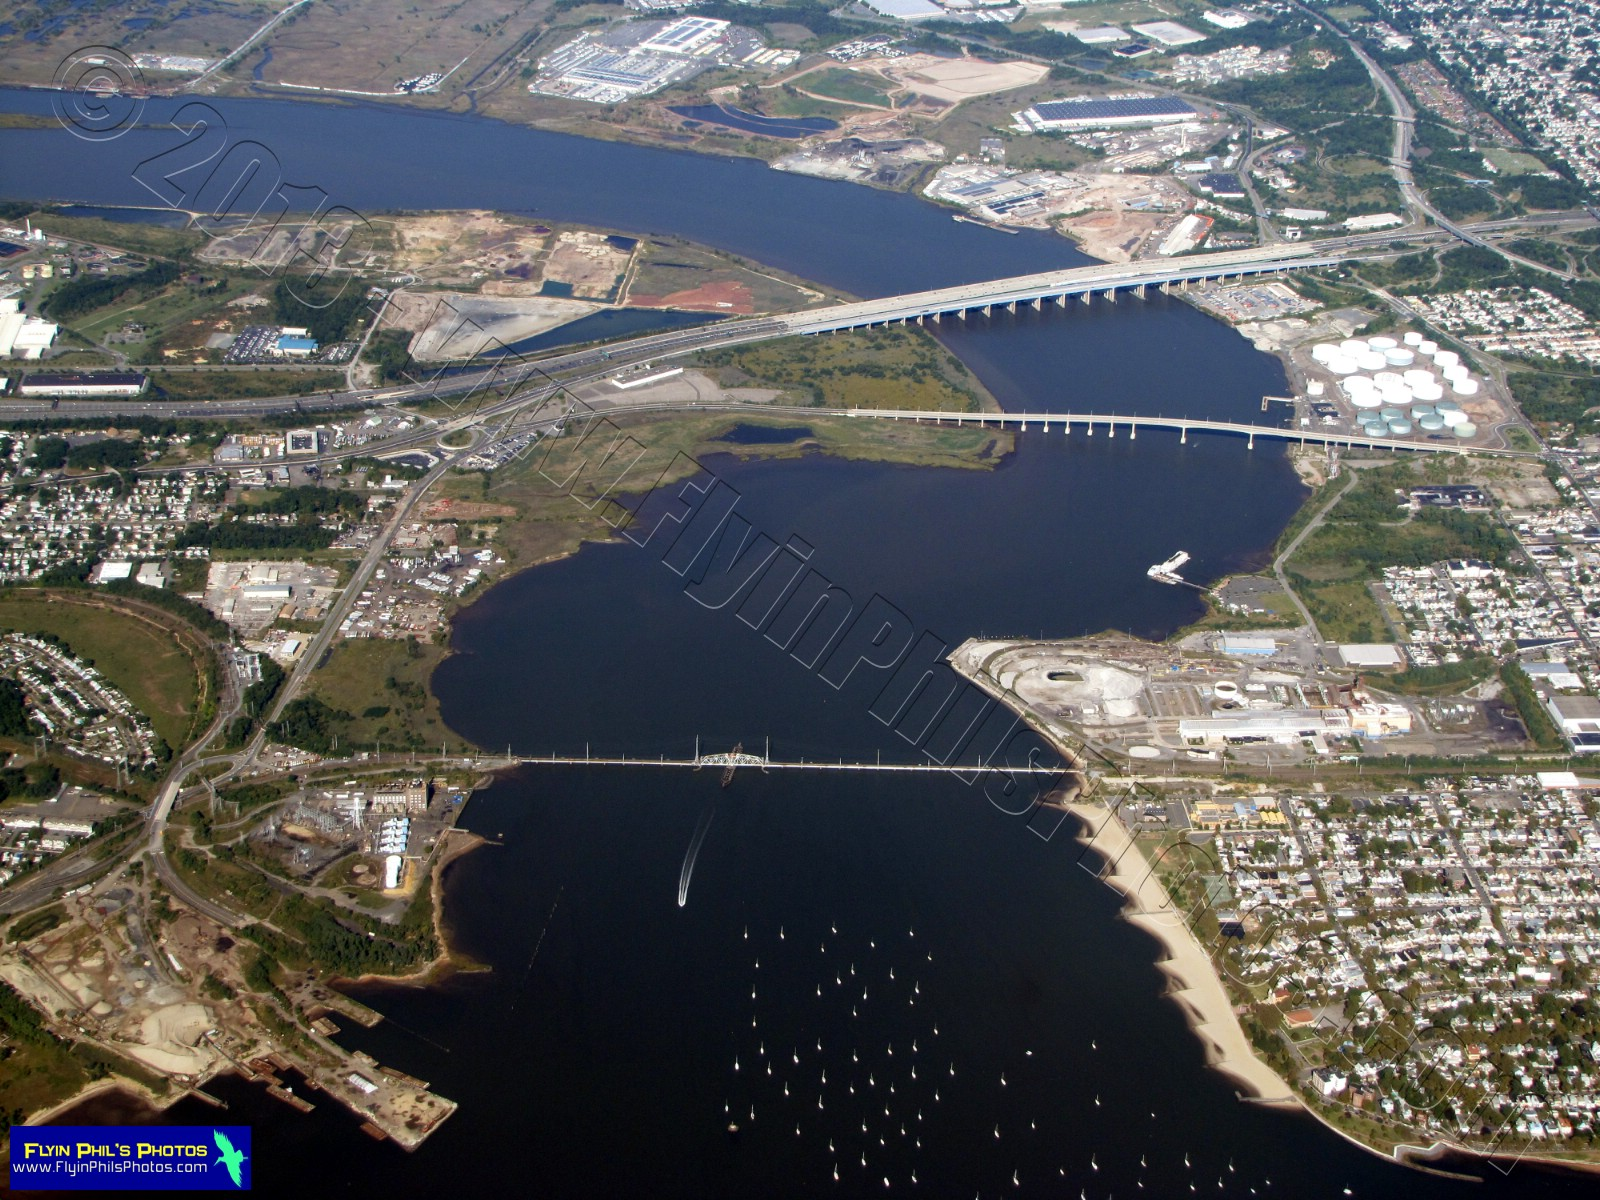 Lovely Garden State Parkway And Route 9; The Route 35 Bridge (center) And A  Rail Road Bridge (lower) Over The. Raritan River At Perth Amboy, NJ